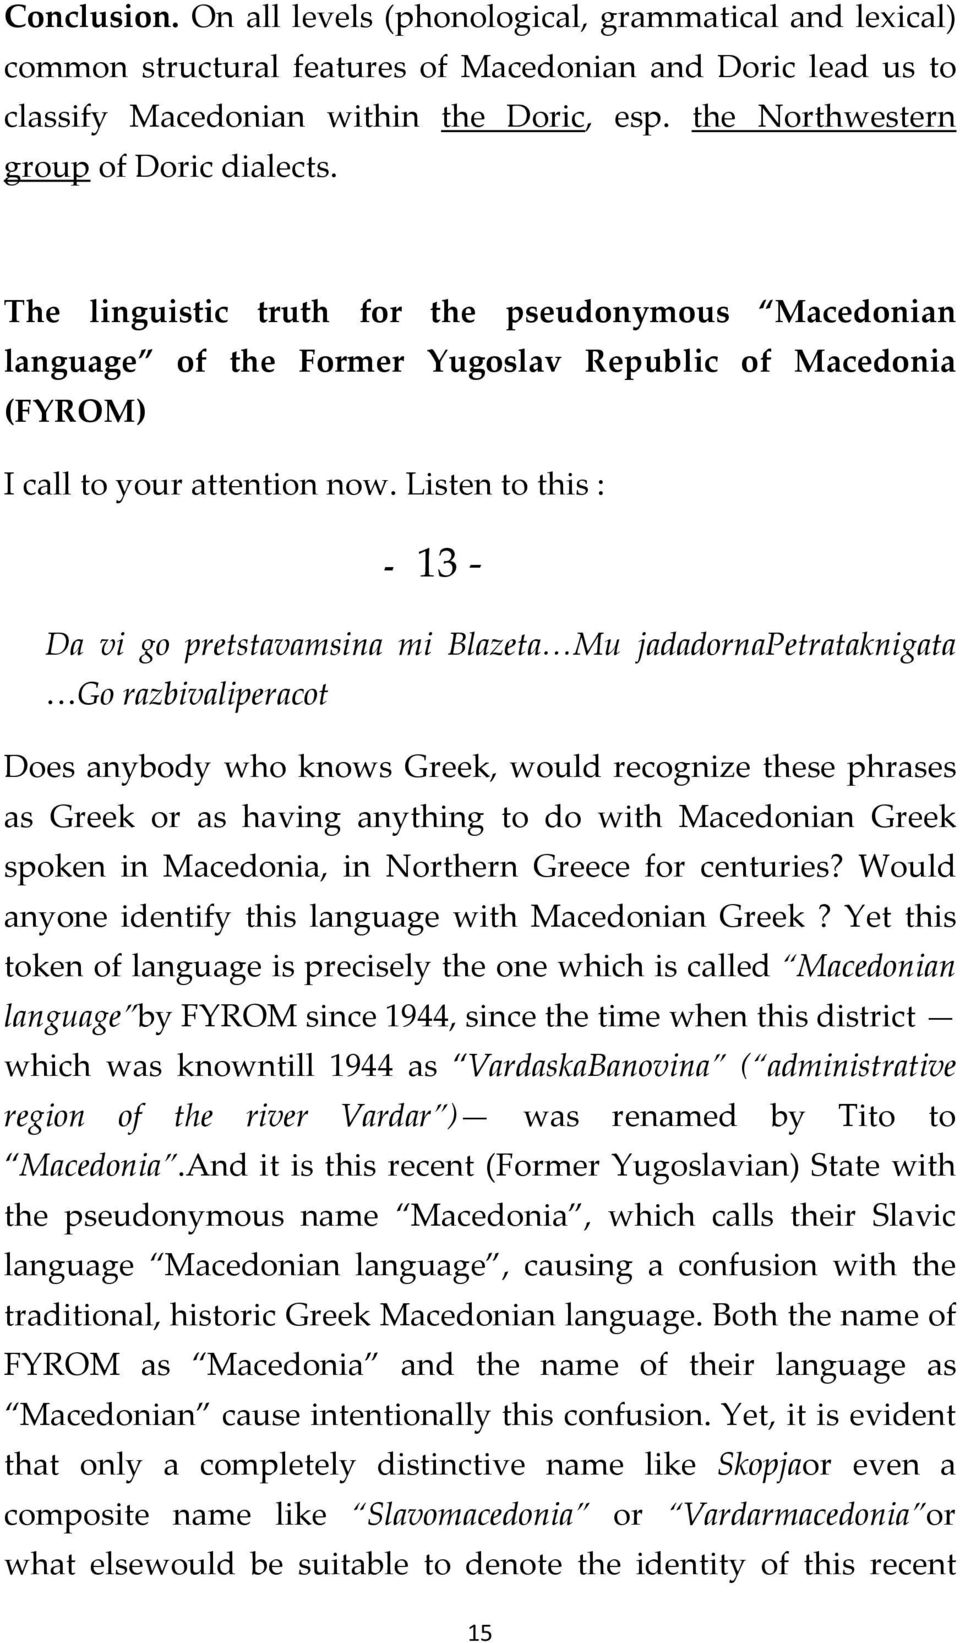 Listen to this : 13 Da vi go pretstavamsina mi Blazeta Mu jadadornapetrataknigata Go razbivaliperacot Does anybody who knows Greek, would recognize these phrases as Greek or as having anything to do